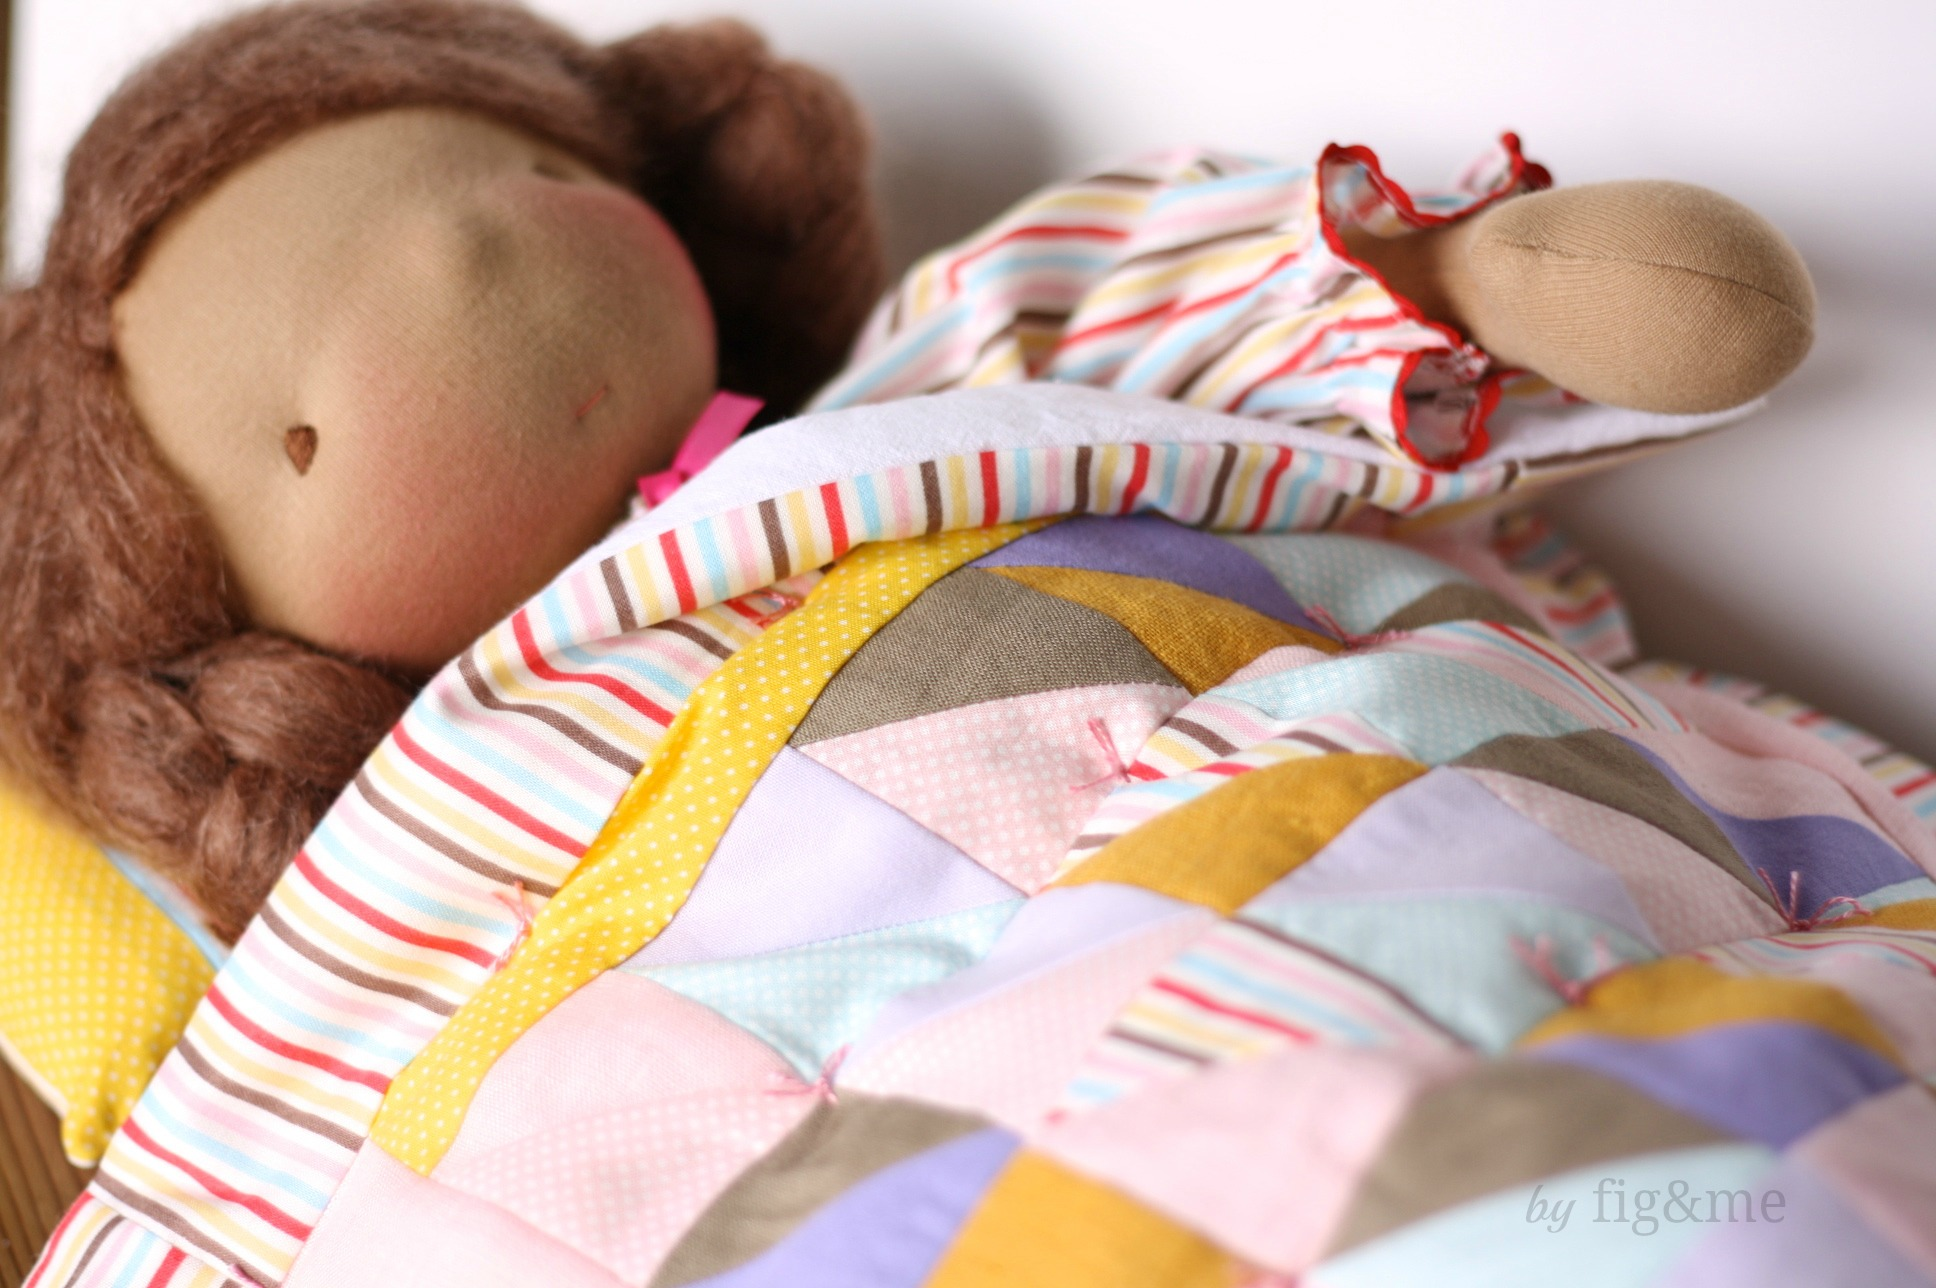 A sleeping Carlotta, by fig and me.